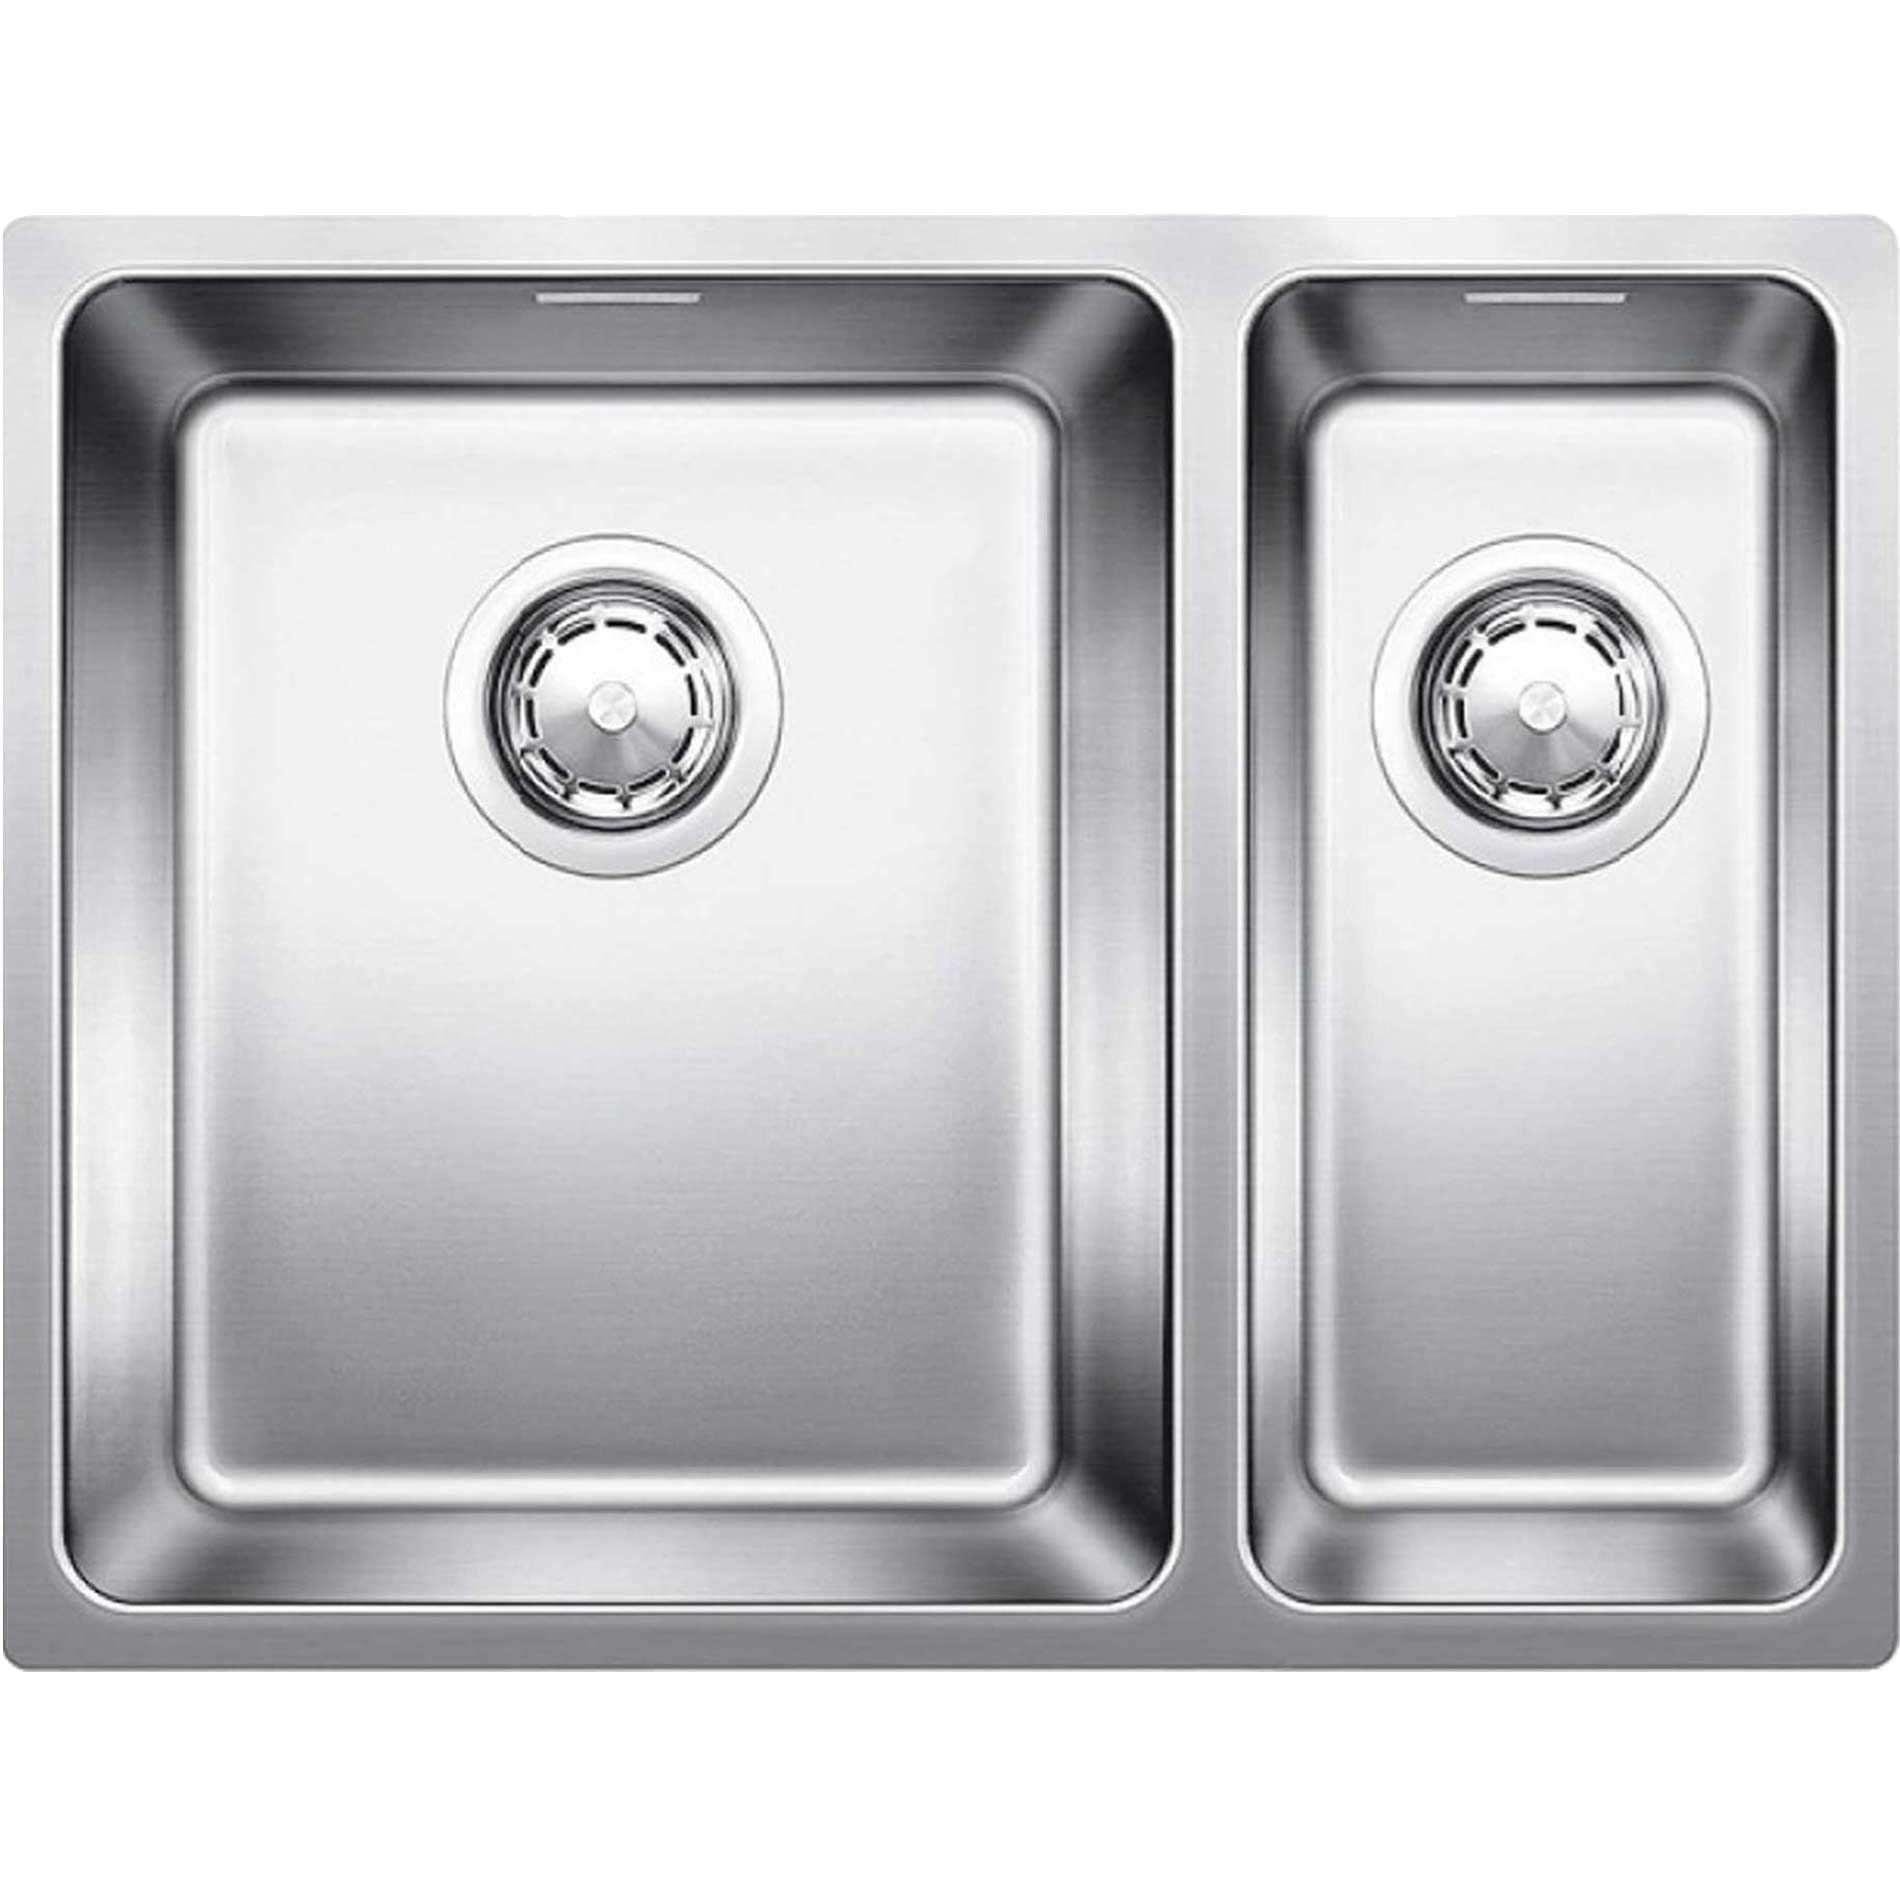 picture of andano 340180if stainless steel sink